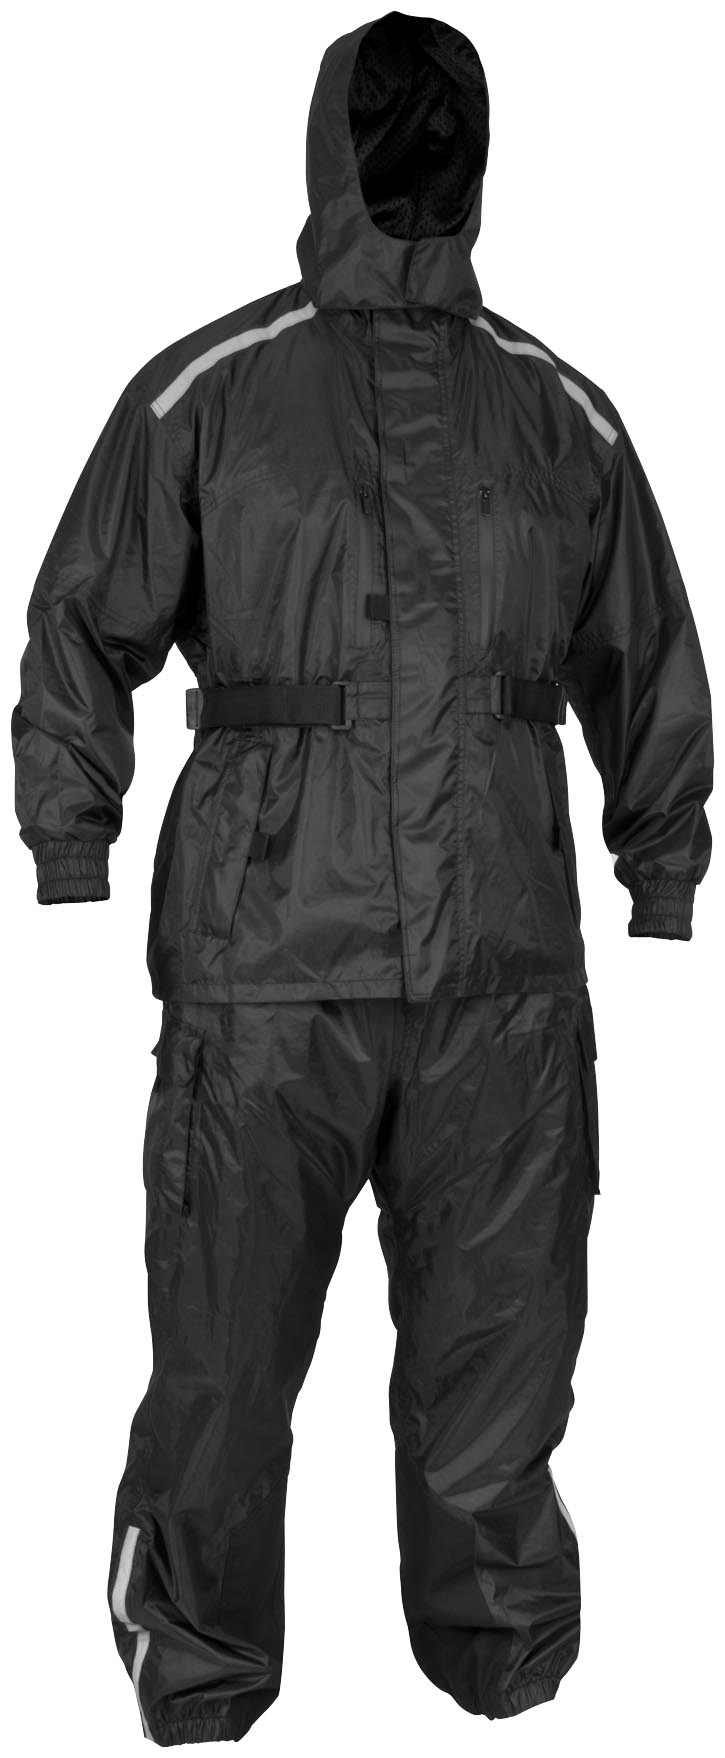 Tempest 2-Piece Rainsuit